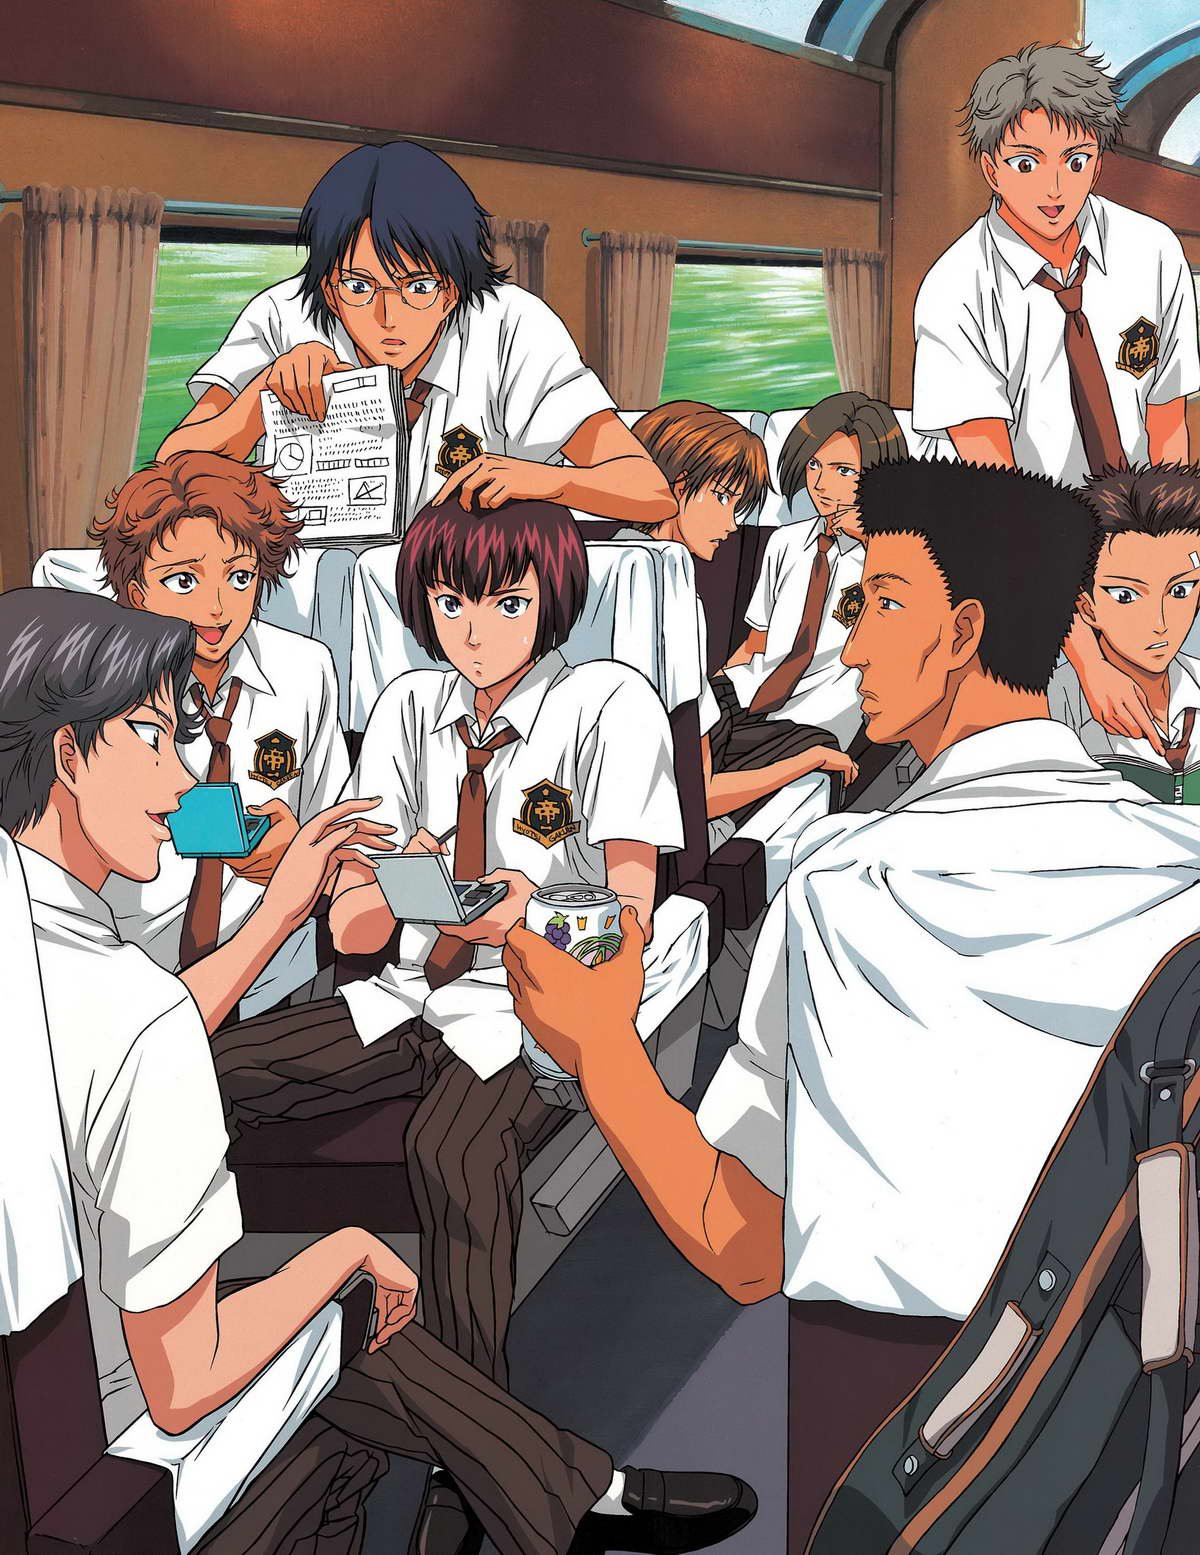 http://vignette2.wikia.nocookie.net/princeoftennis/images/d/dc/The_whole_Hyotei_team_on_a_train.jpg/revision/latest?cb=20110730181625